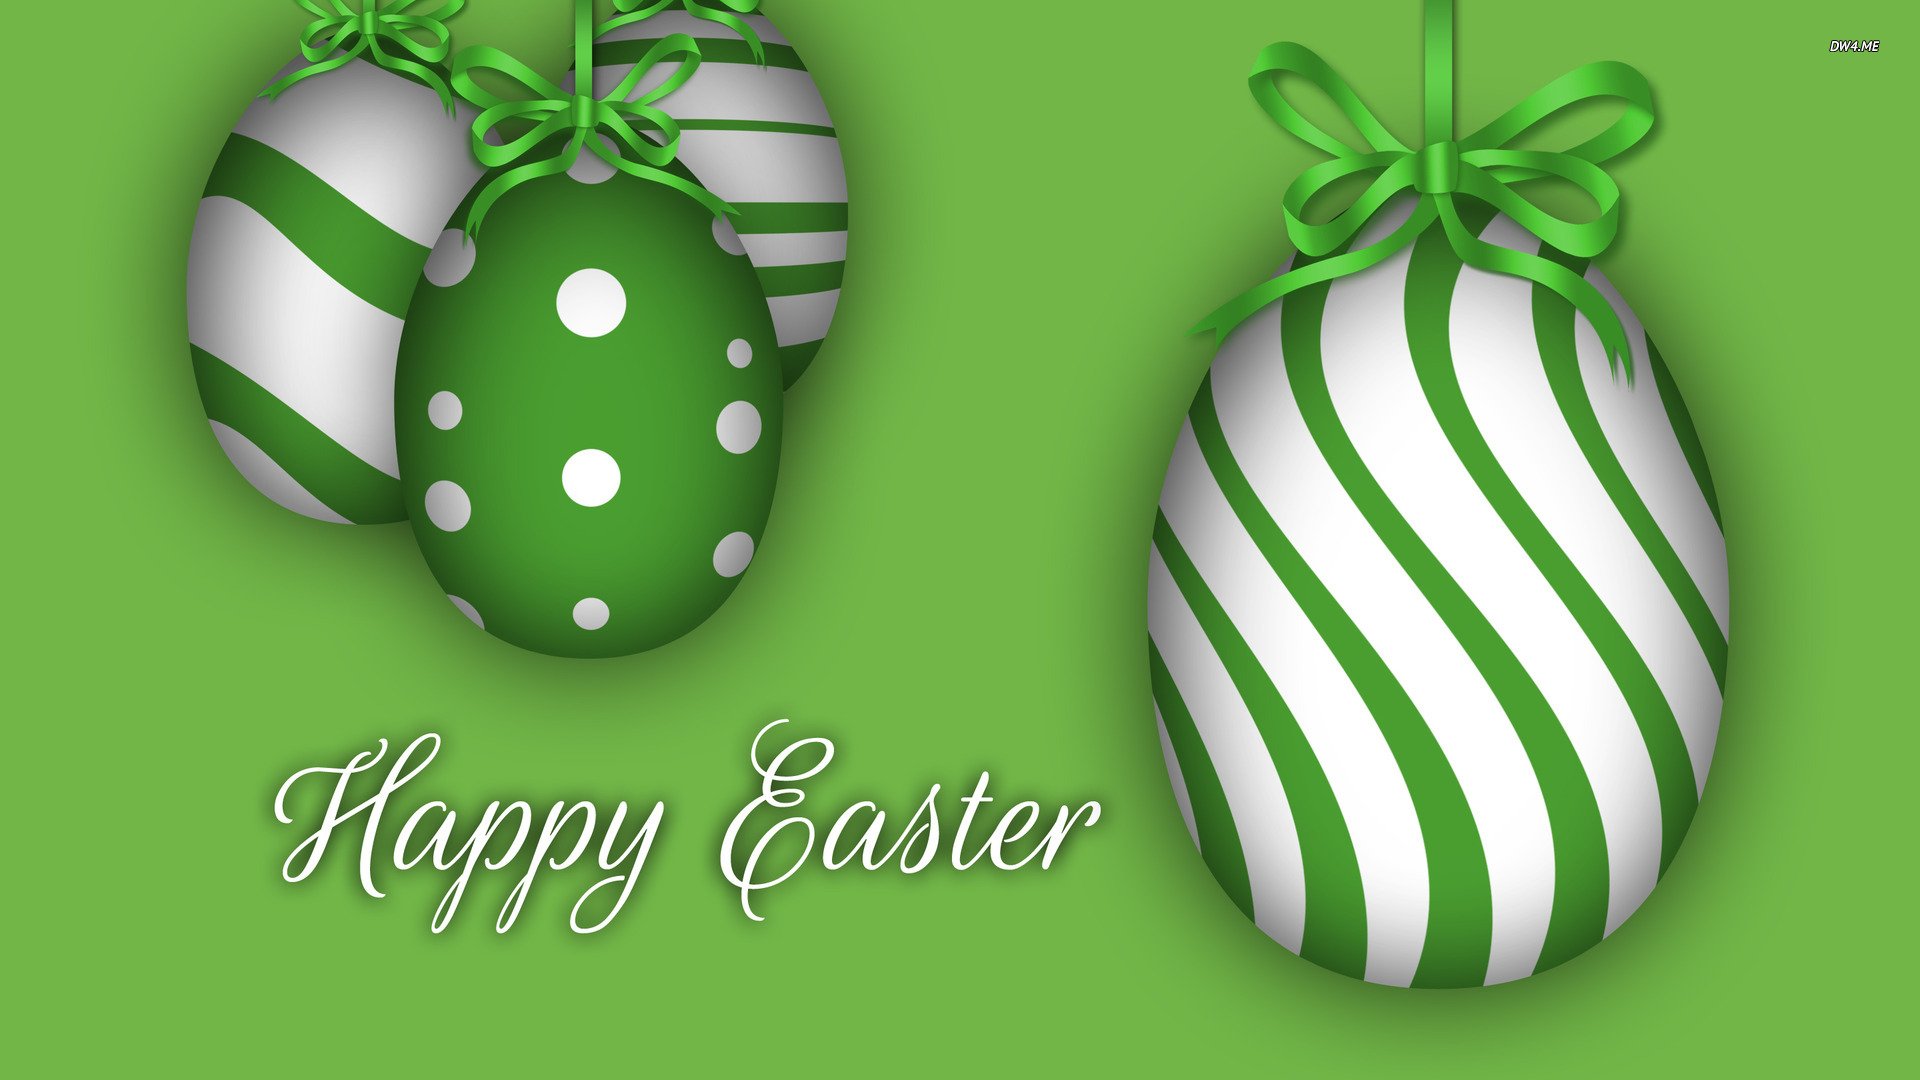 Easter Backgrounds 2016 download Wallpapers Backgrounds 1920x1080